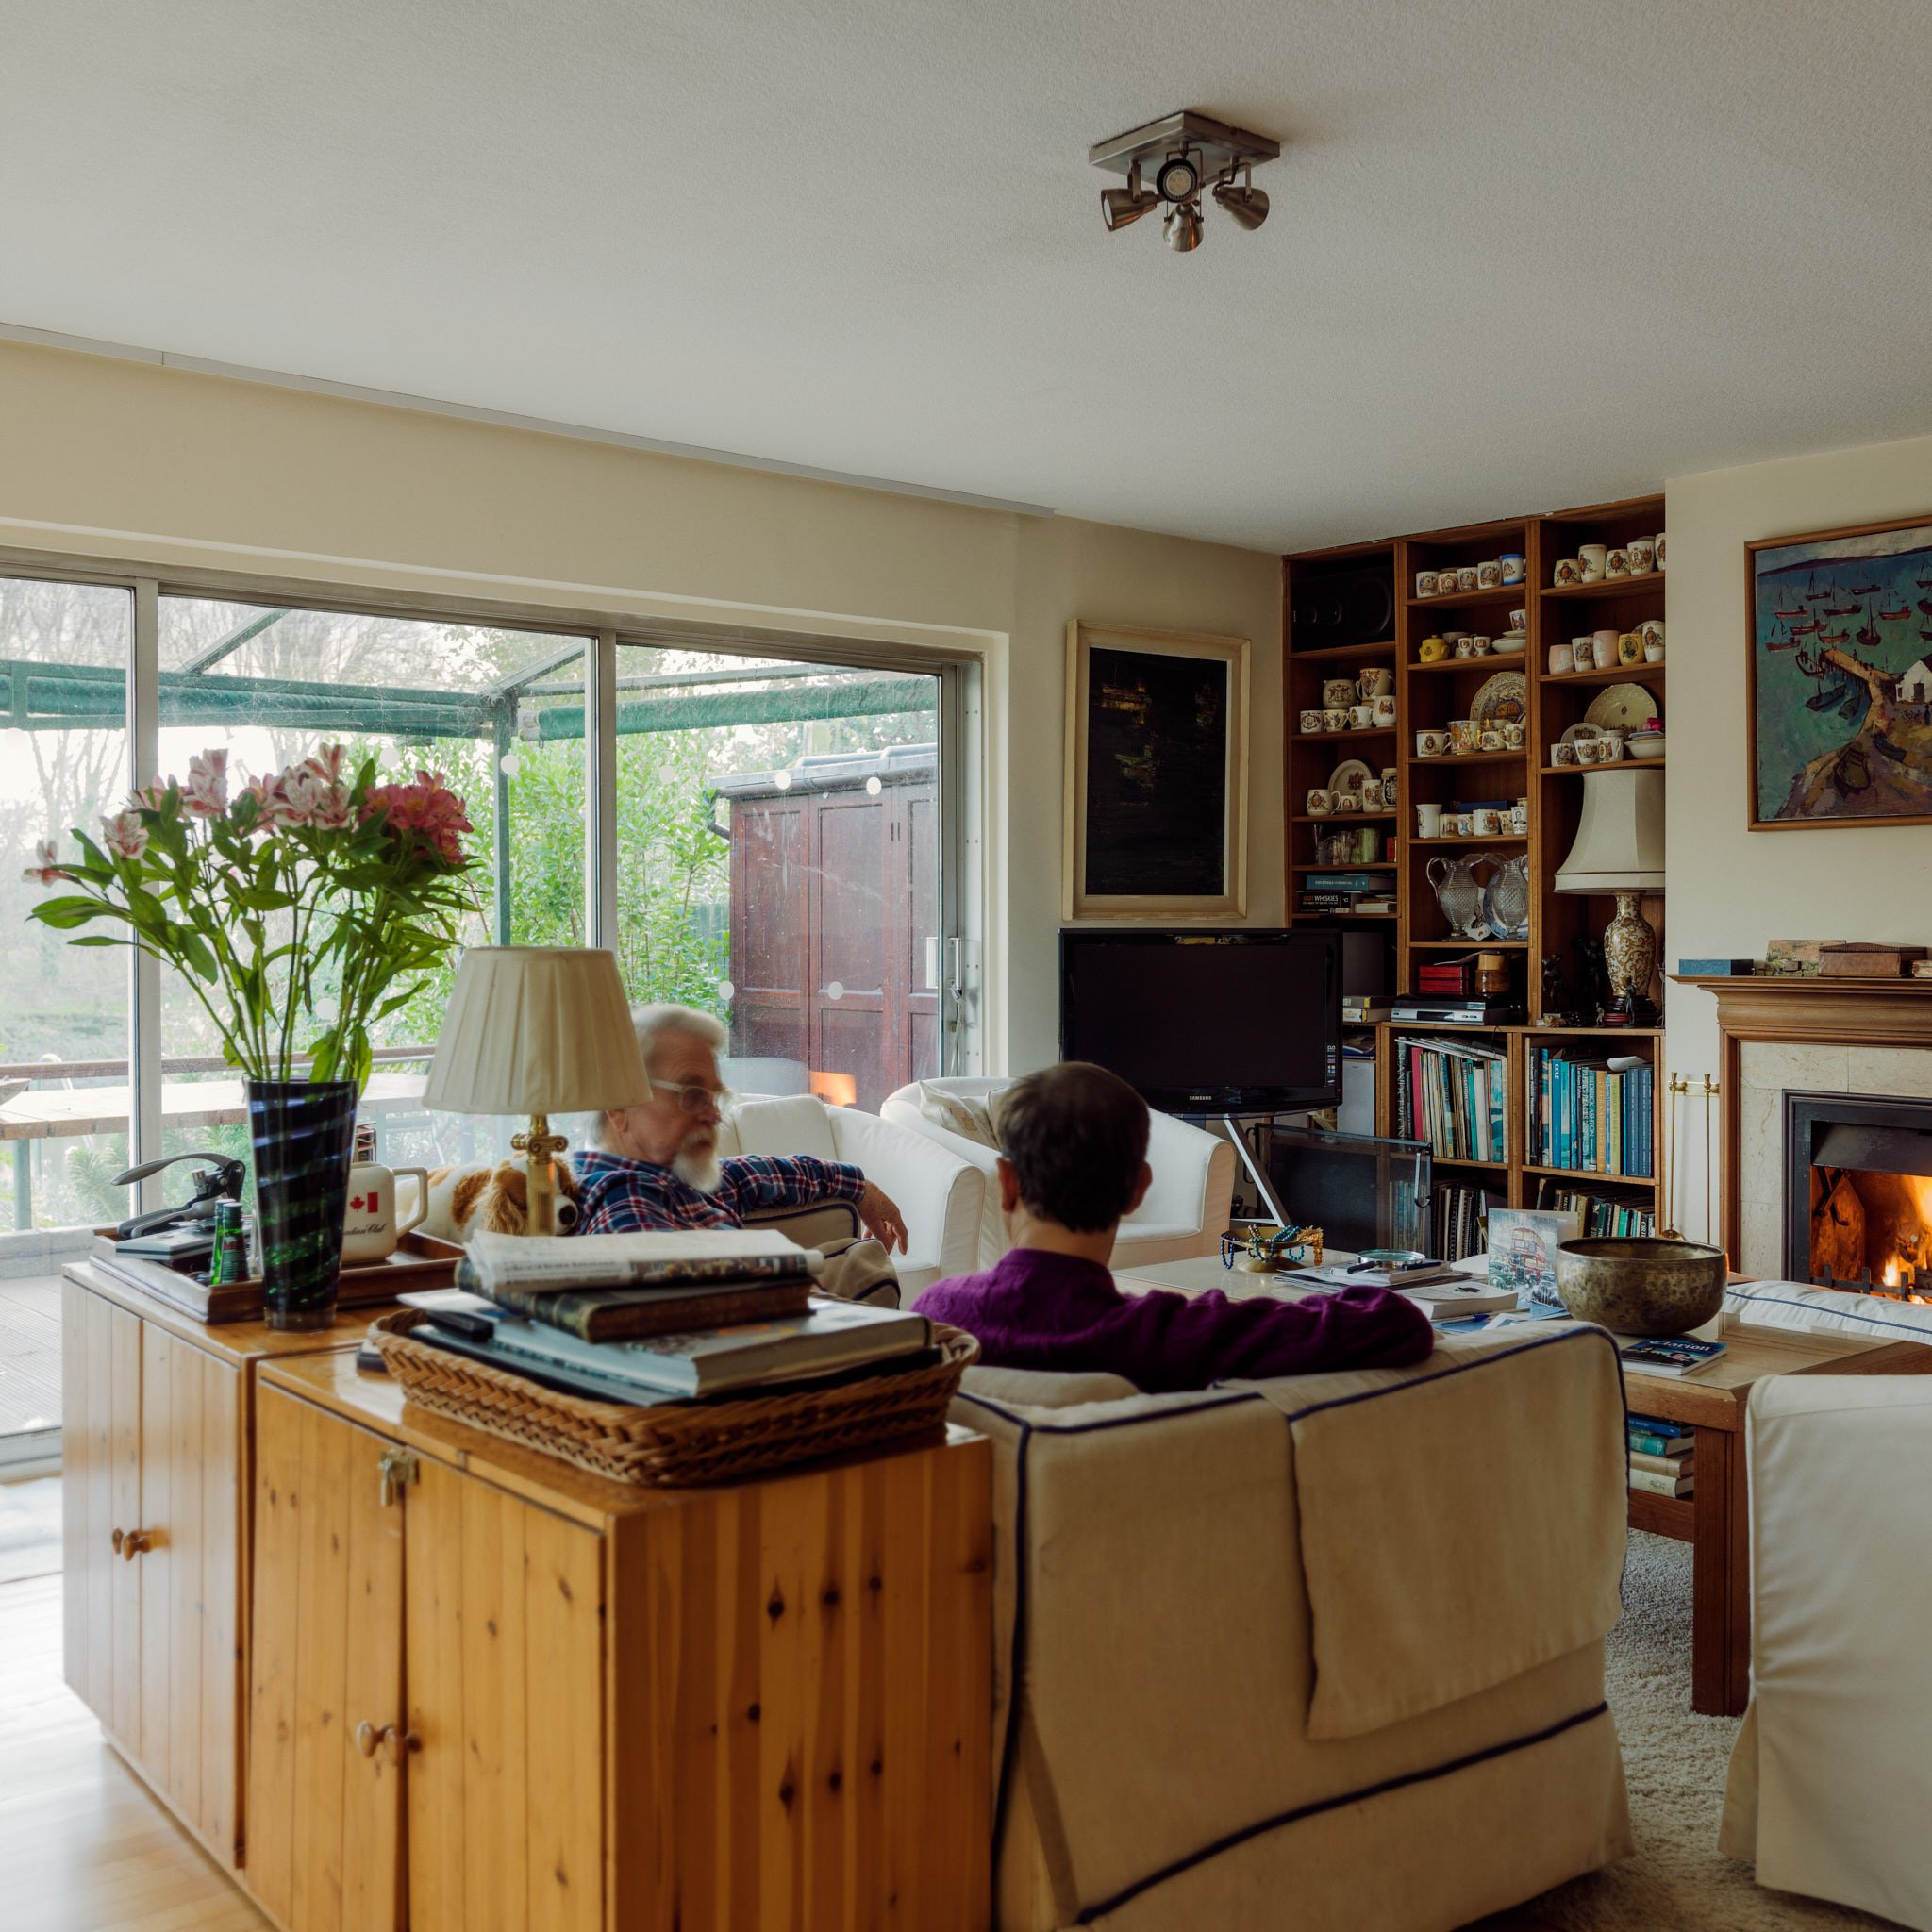 Daniel and Edward at home in Twickenham – photographed for Project Living Abroad